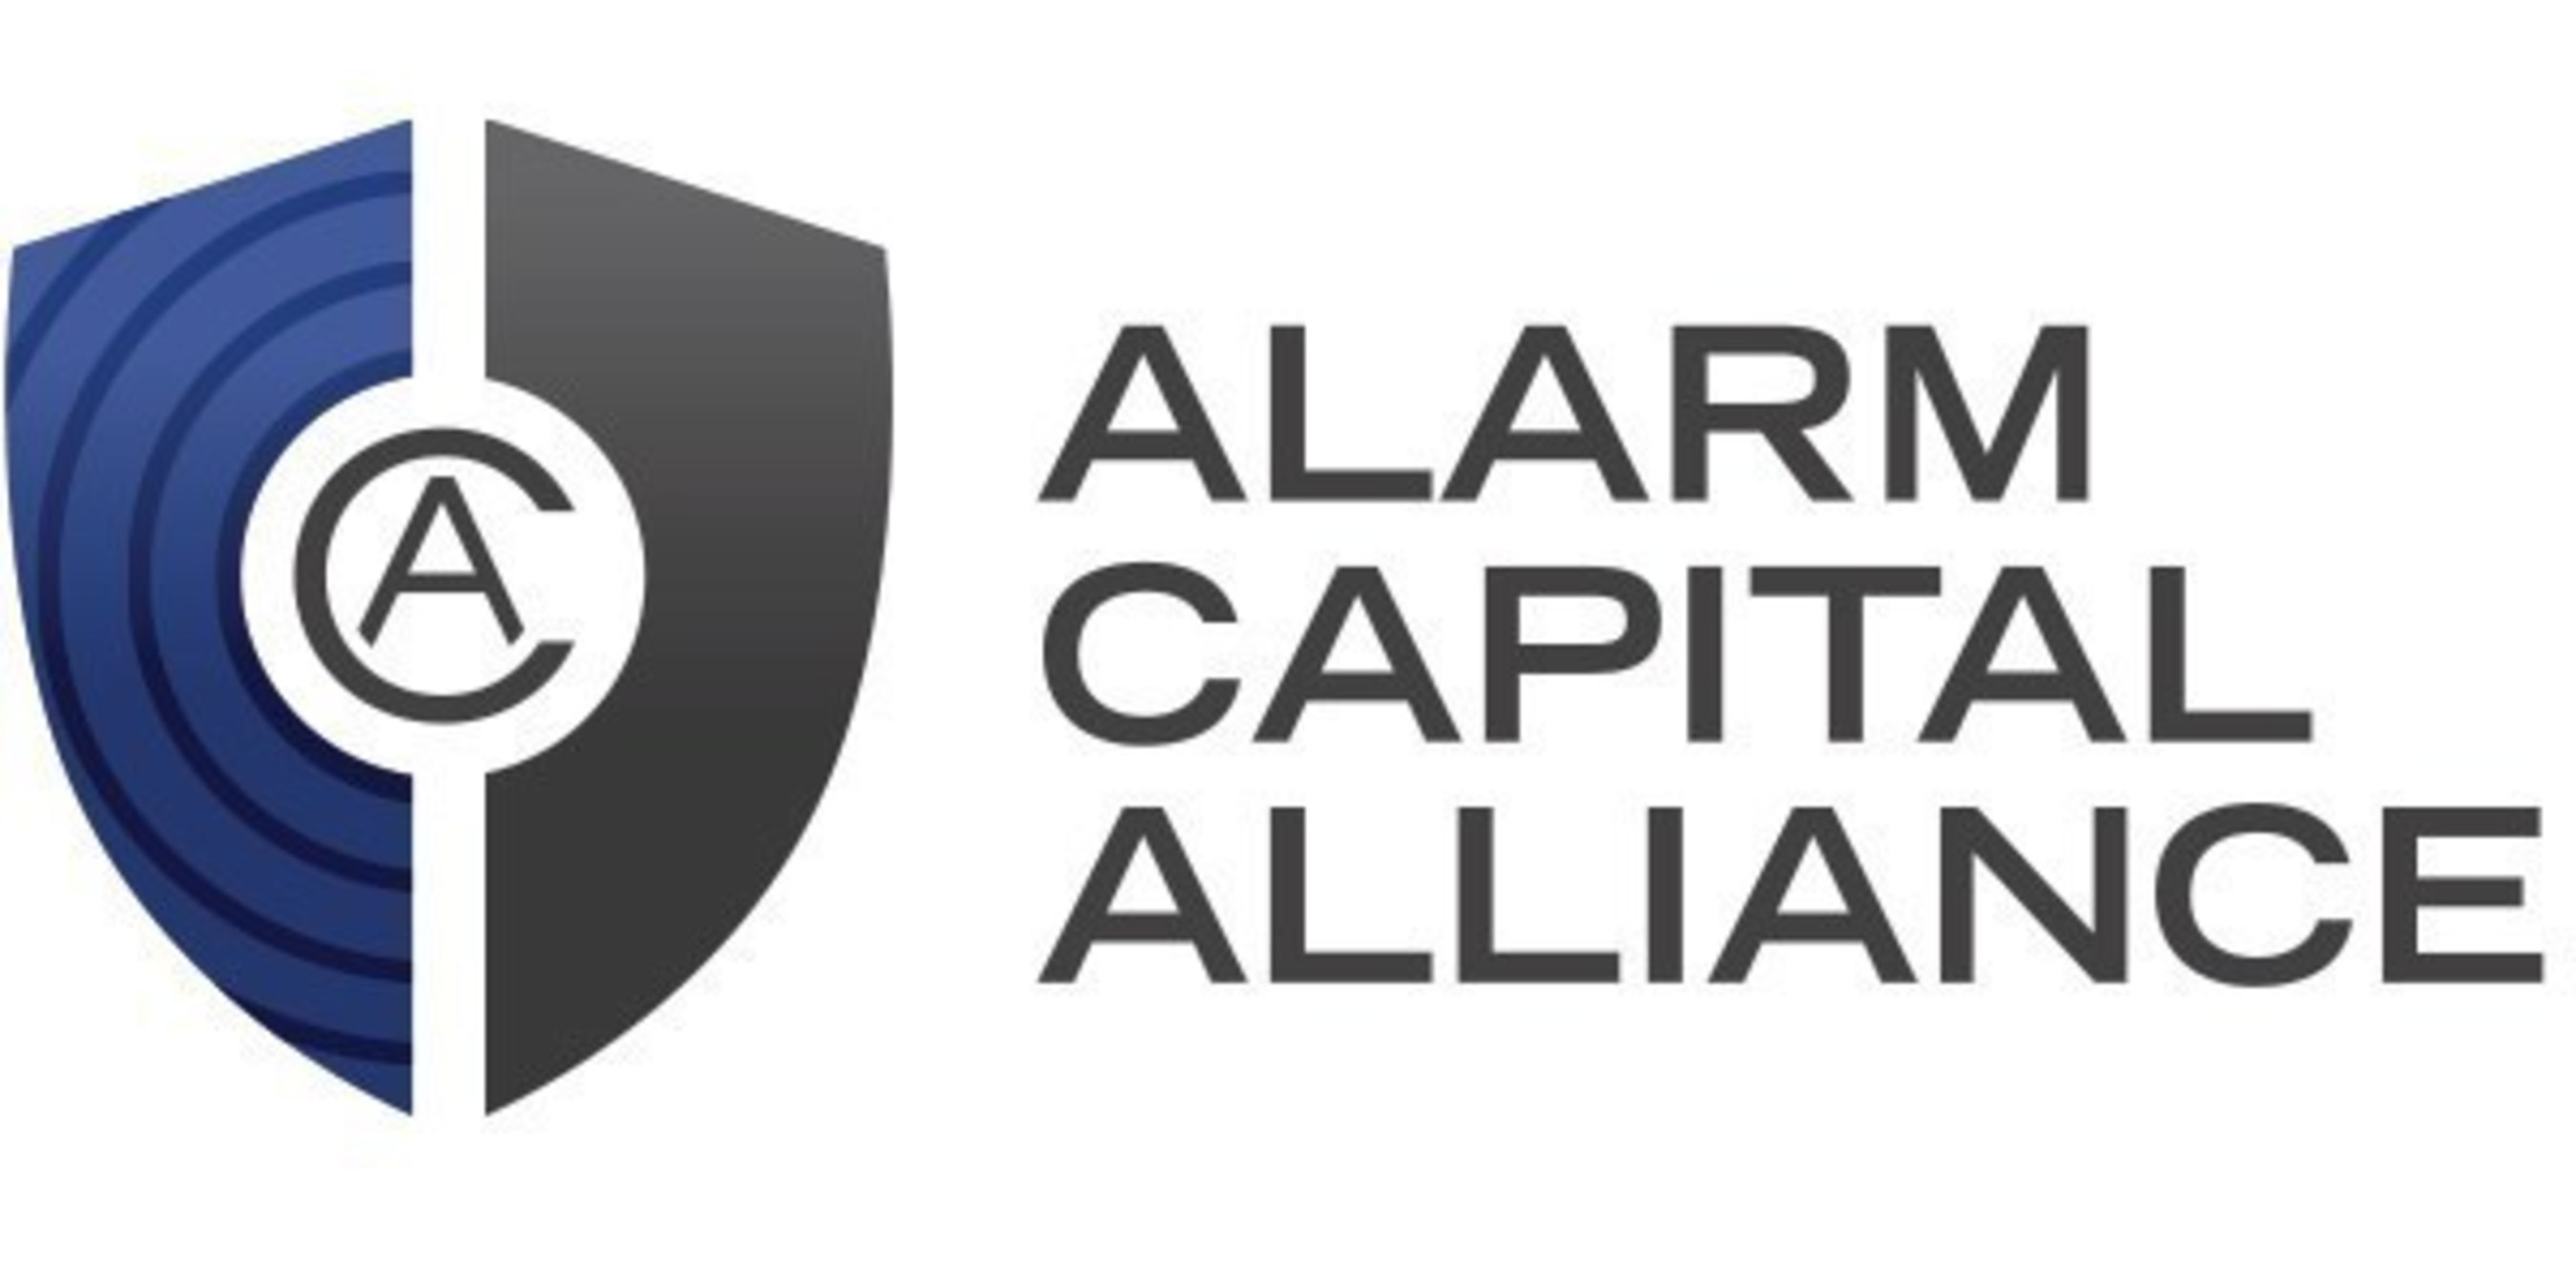 Alarm Capital Alliance Receives International M&A Award